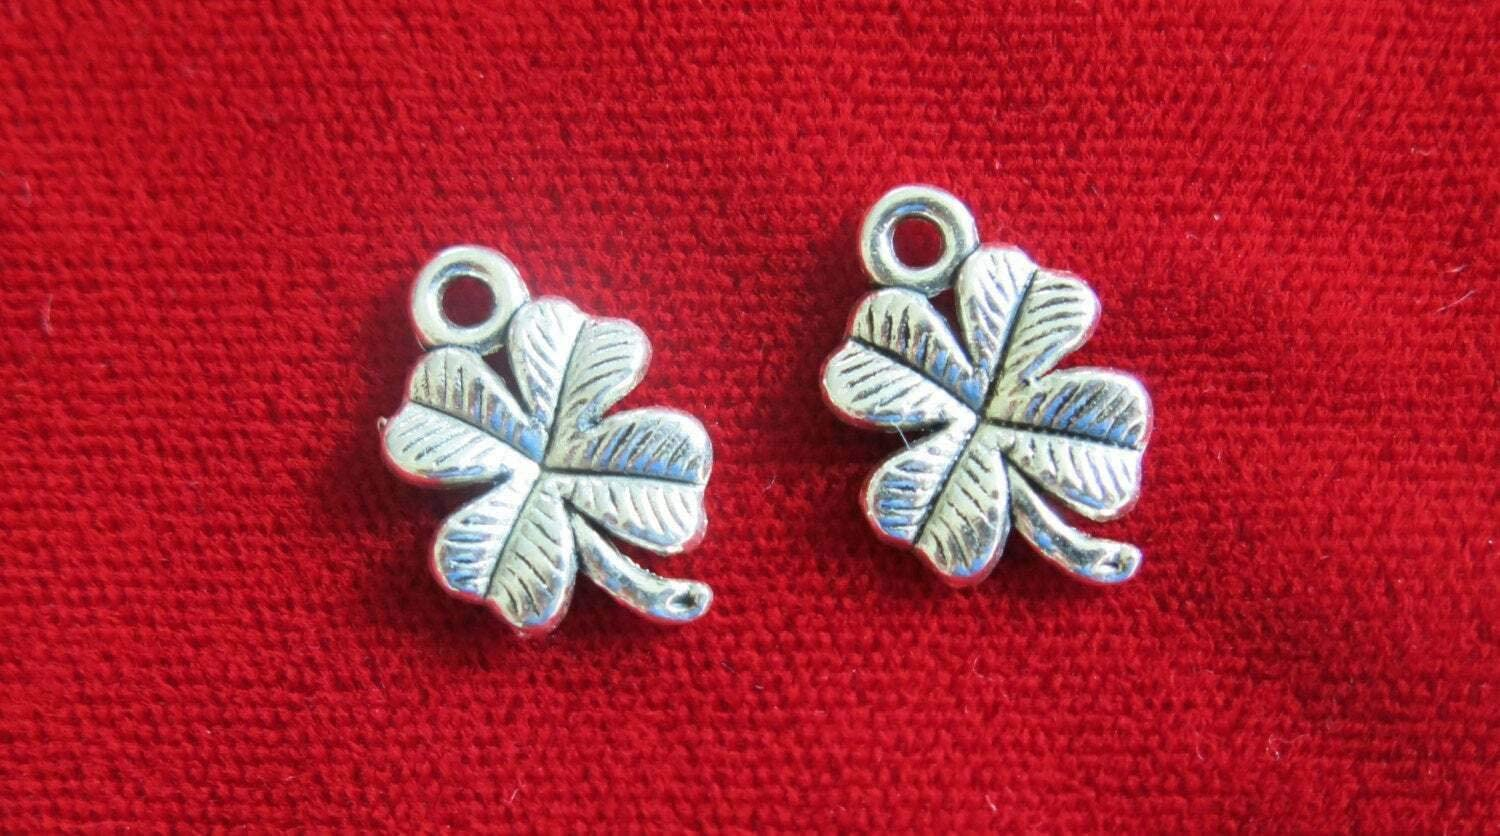 Charm Pendant - Jewelry Making DIY - Bracelet Bulk! 30pcClover Charms in Antique Silver Style